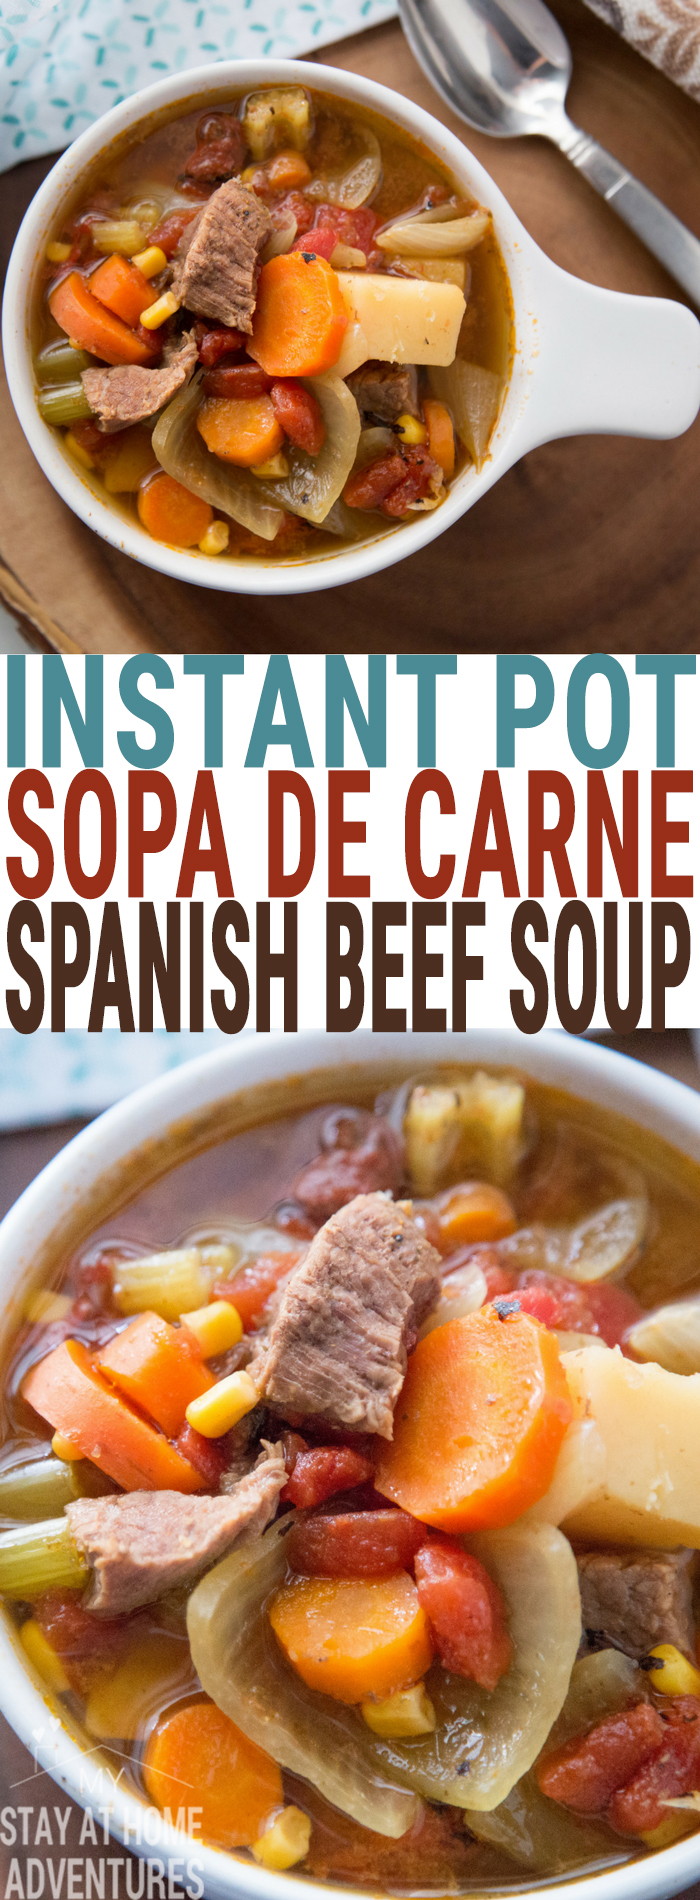 Looking for a delicious and simple Puerto Rican recipe? Check out this Instant Pot Sopa de Carne recipe or Puerto Rican Beef Soup recipe that you and your family are going to love. Don't have an Instant Pot check out our slow cooker recipe! #instantpot #Pressurecooker #PuertoRican #LatinRecipe #Food #recipe